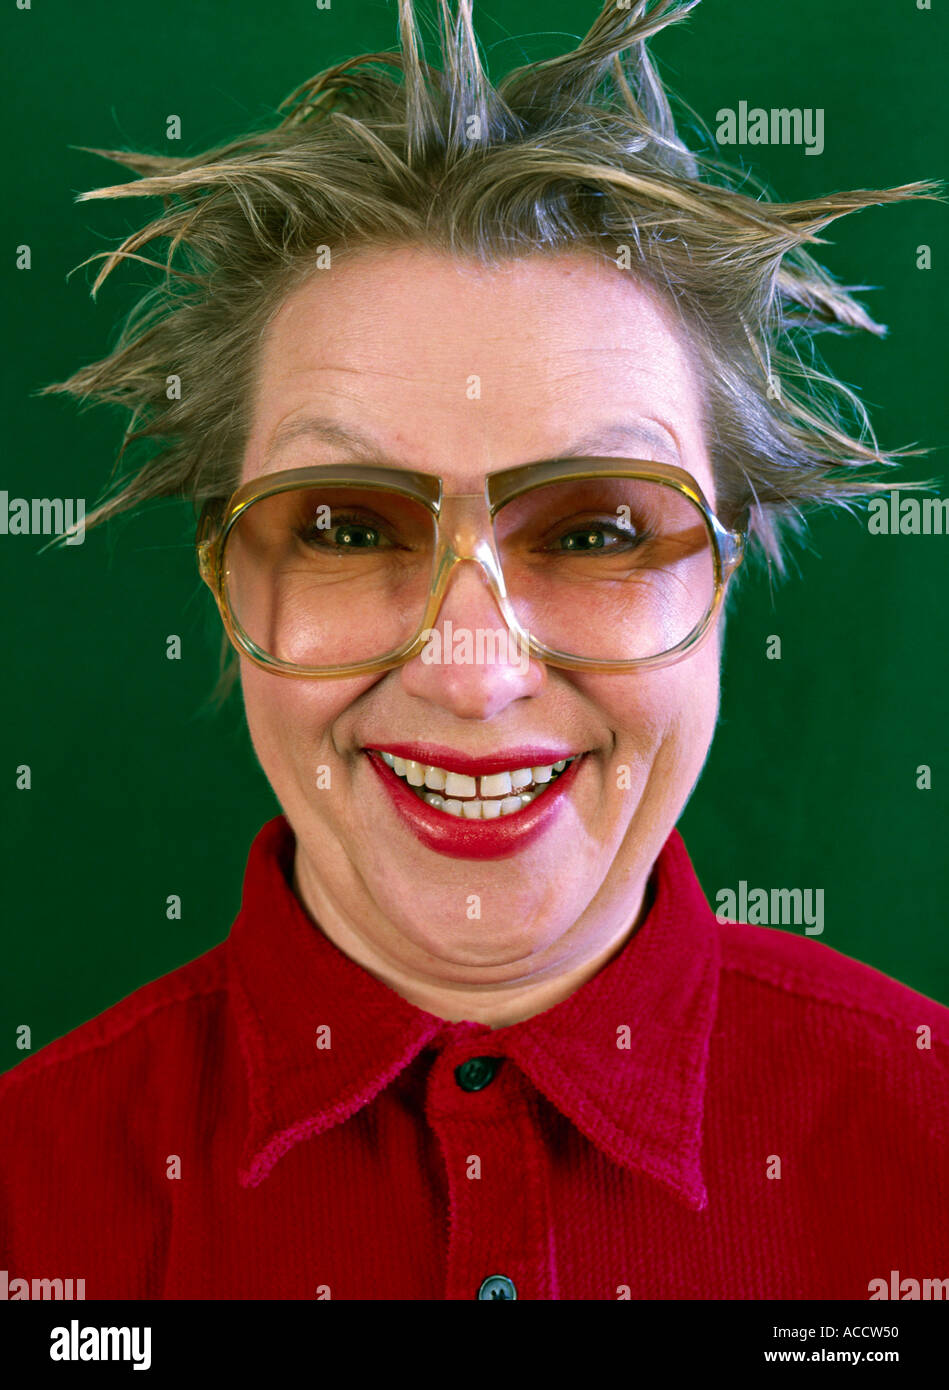 MR woman with tousled hair and big spectacles grinning - Stock Image